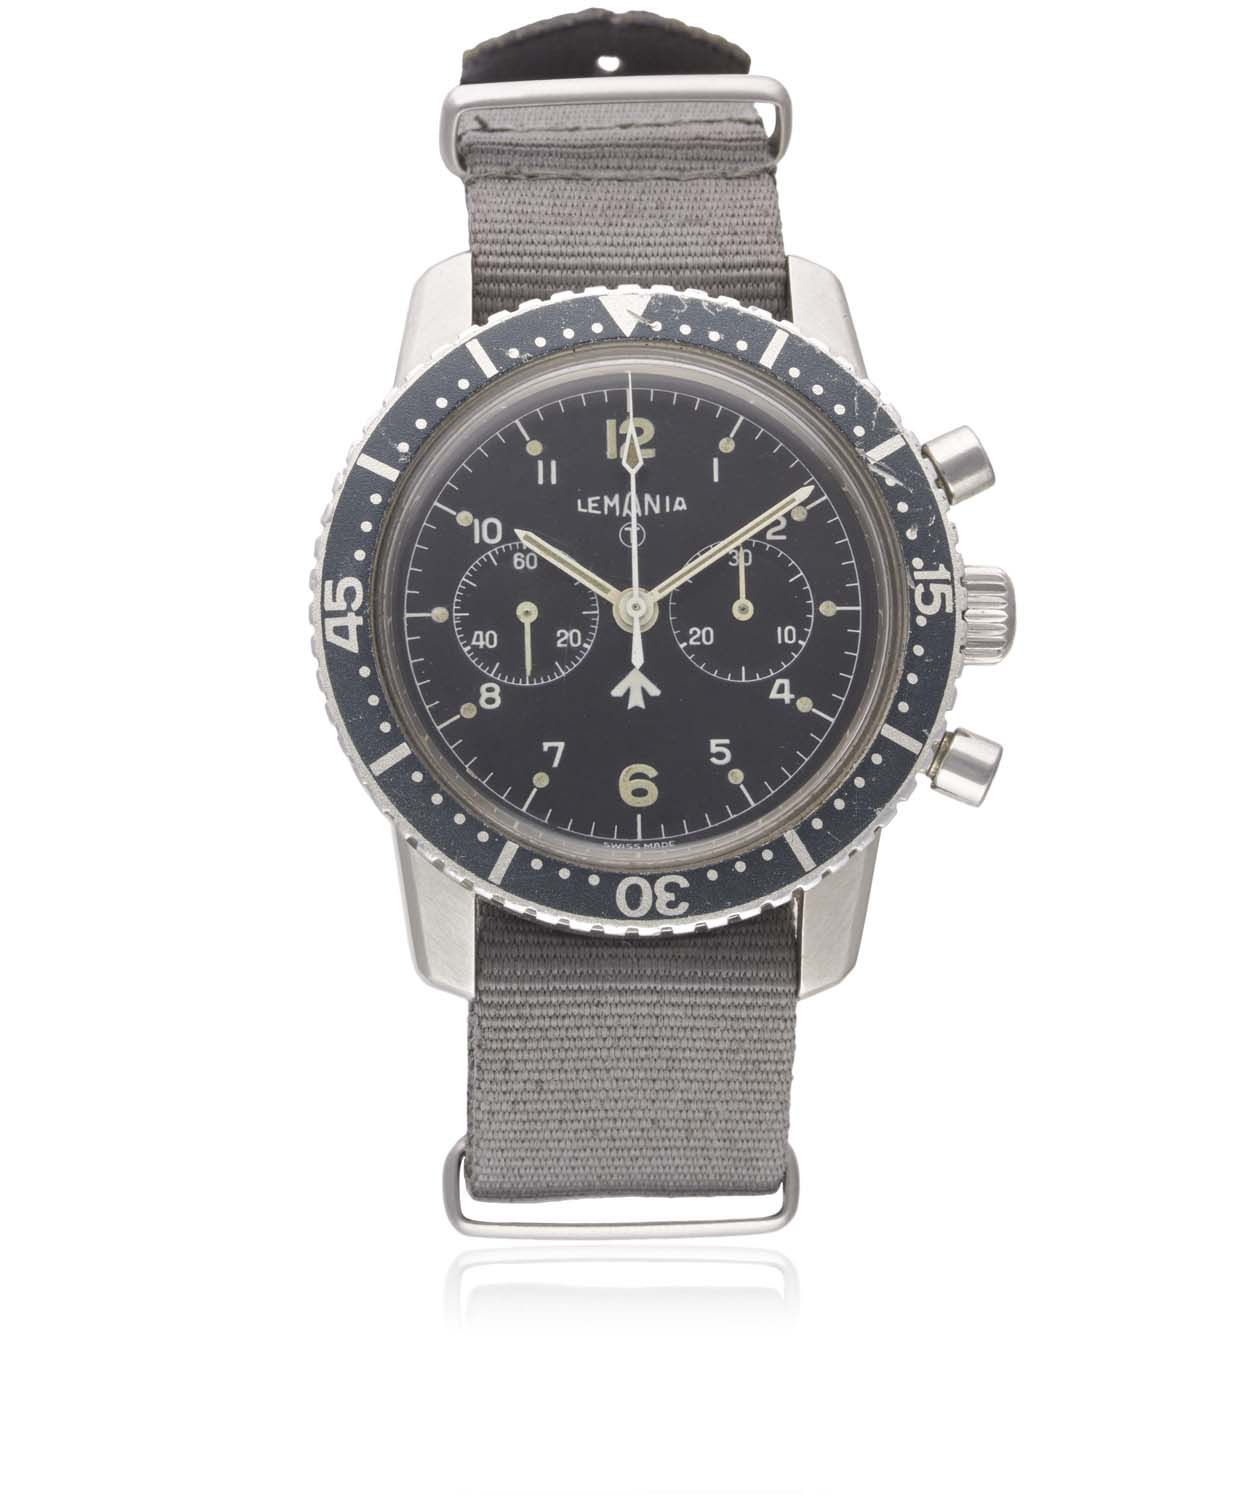 Lemaina (South African Air Force-issued Pilot's Chronograph)